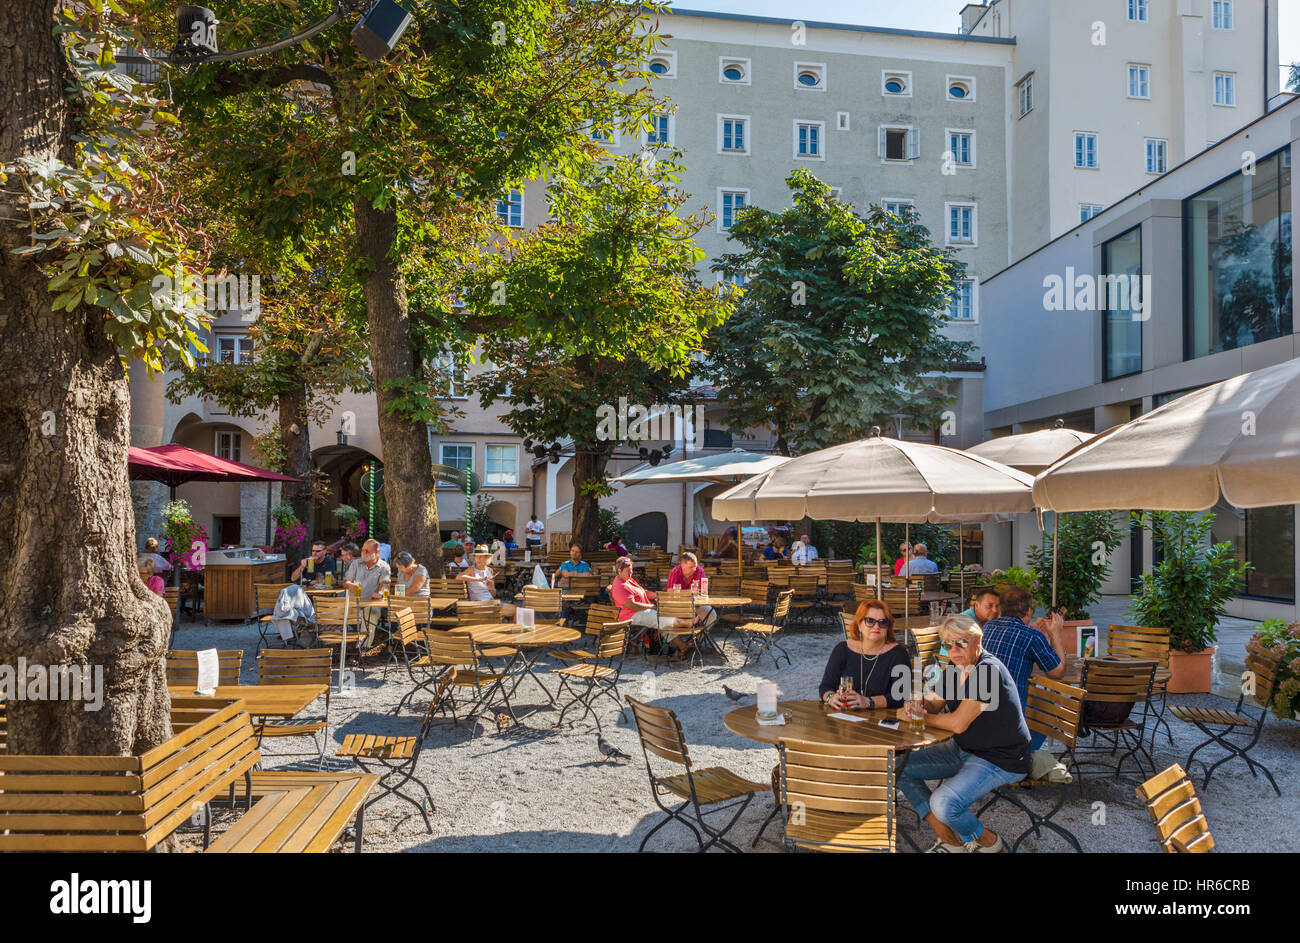 Sternbräu beer garden / cafe in the old town, Salzburg, Austria - Stock Image